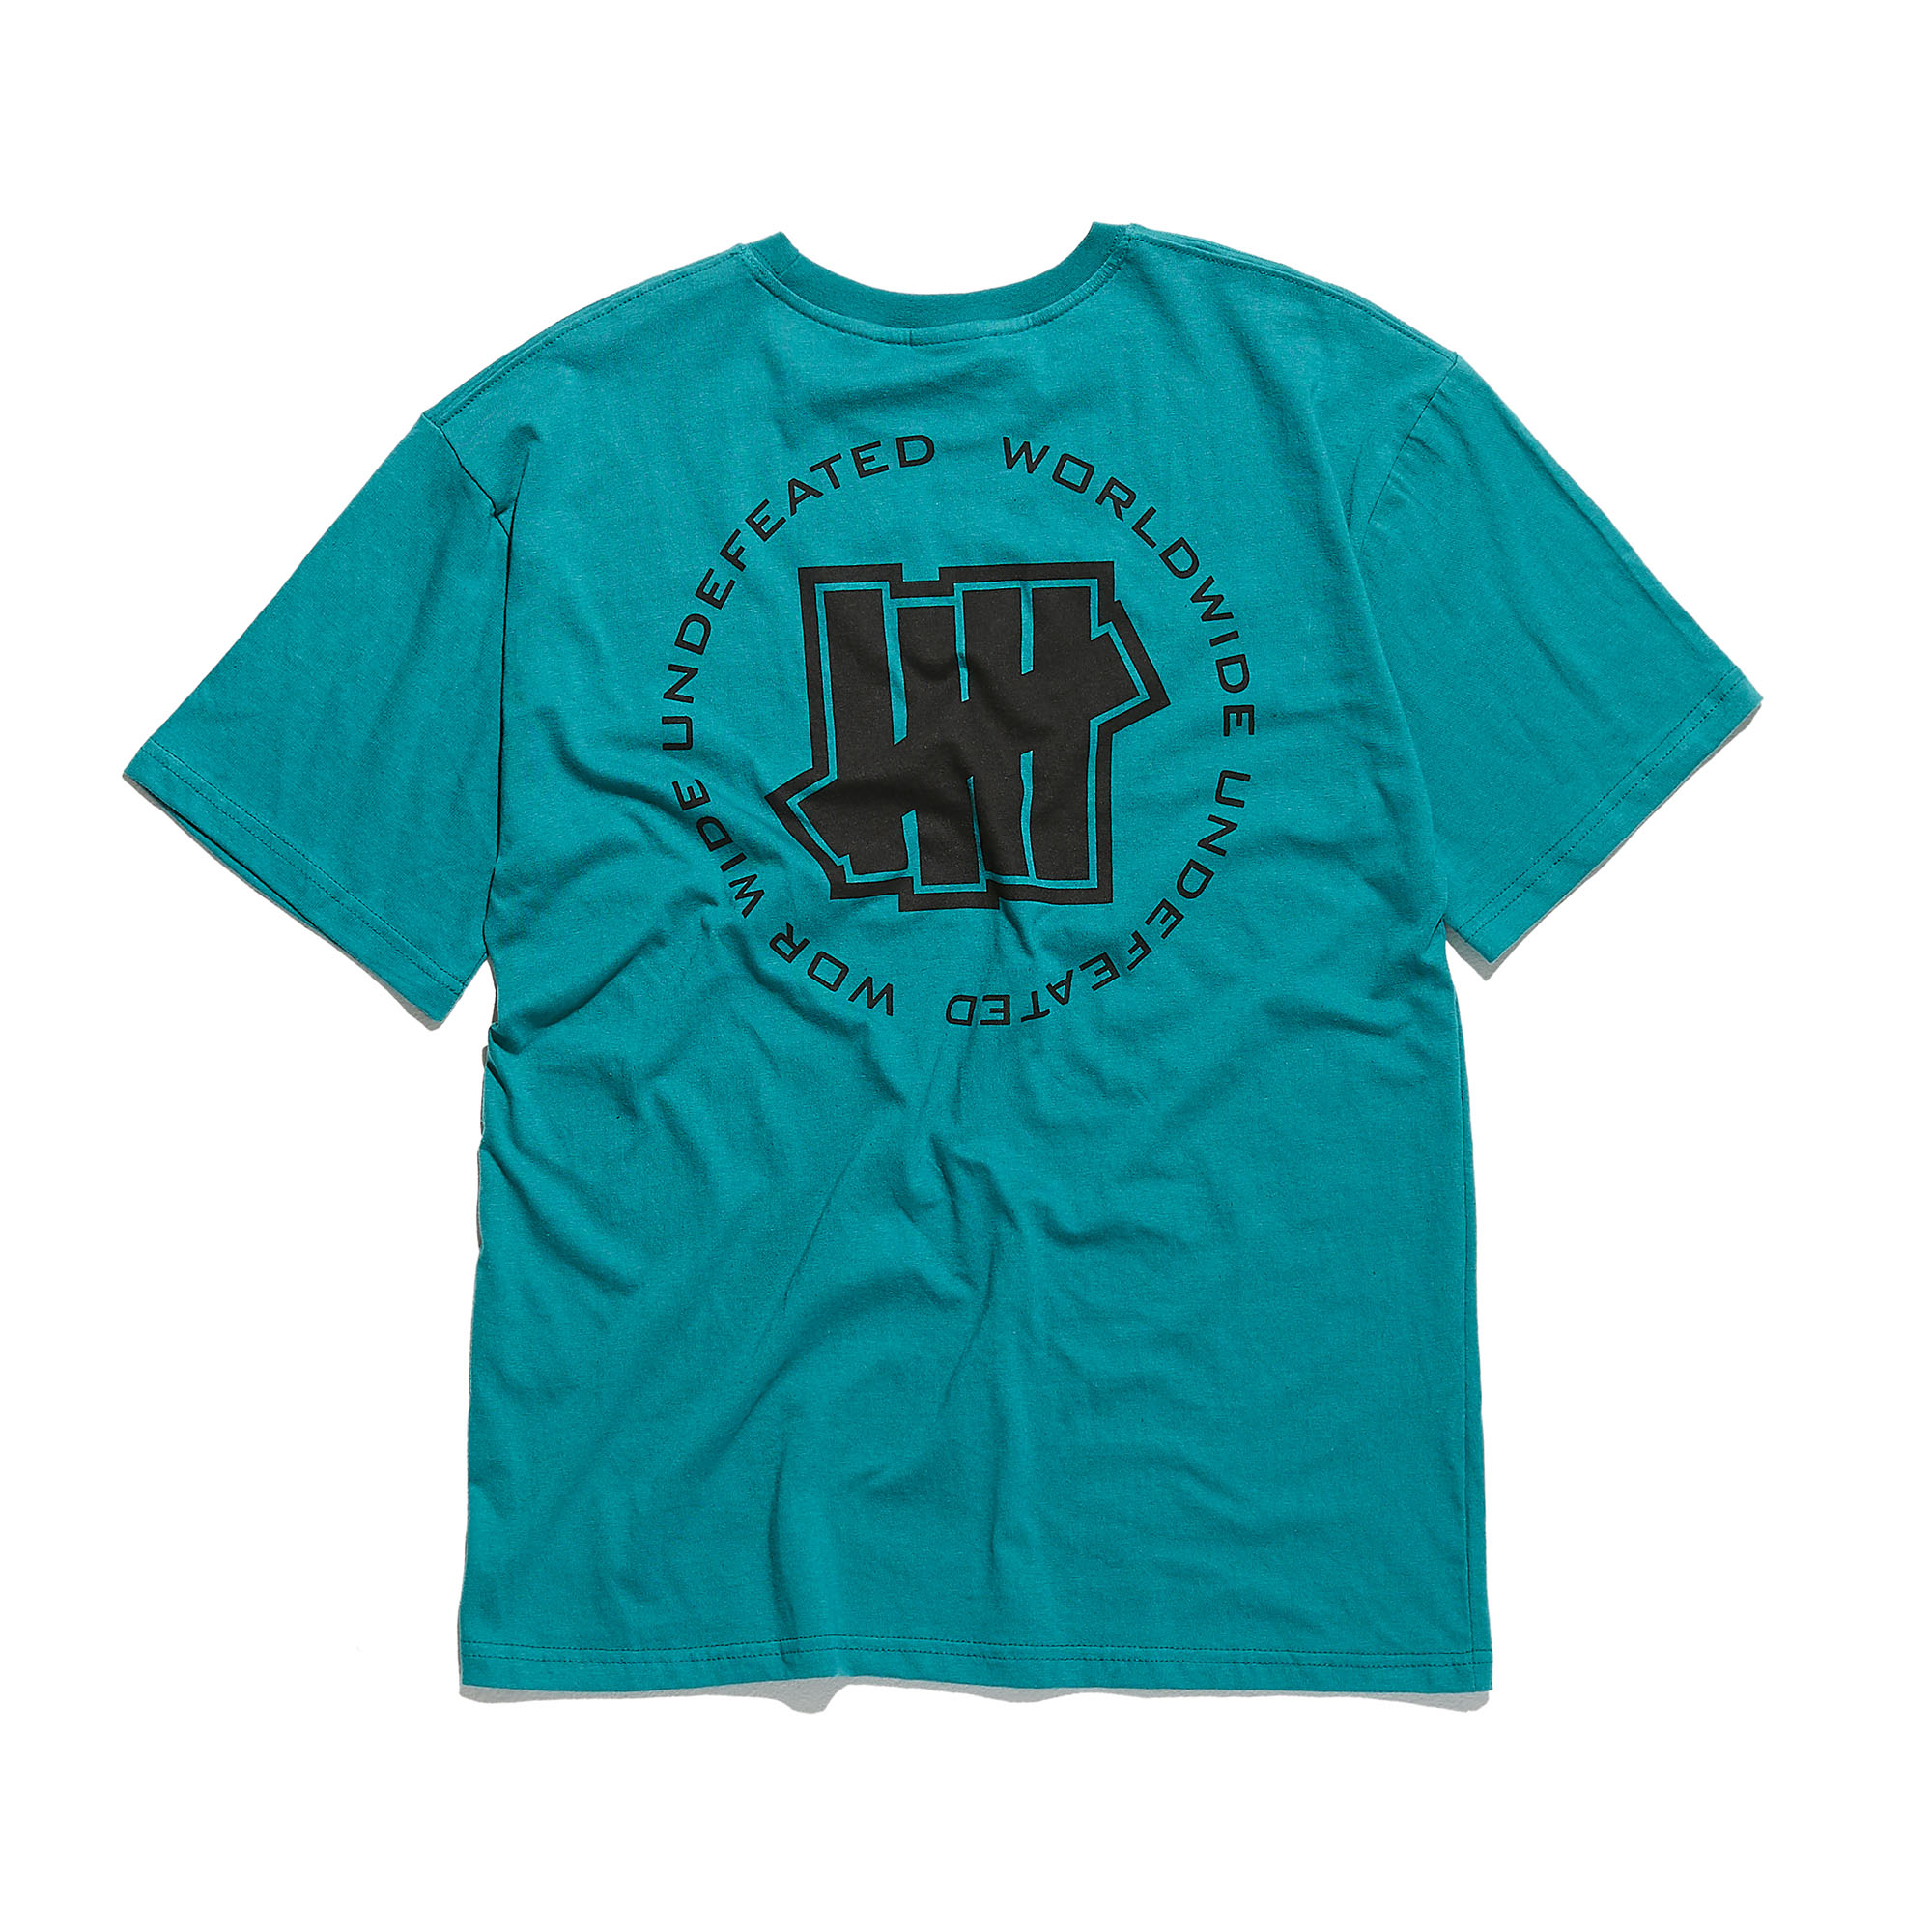 WORLDWIDE LOGO TEE teal